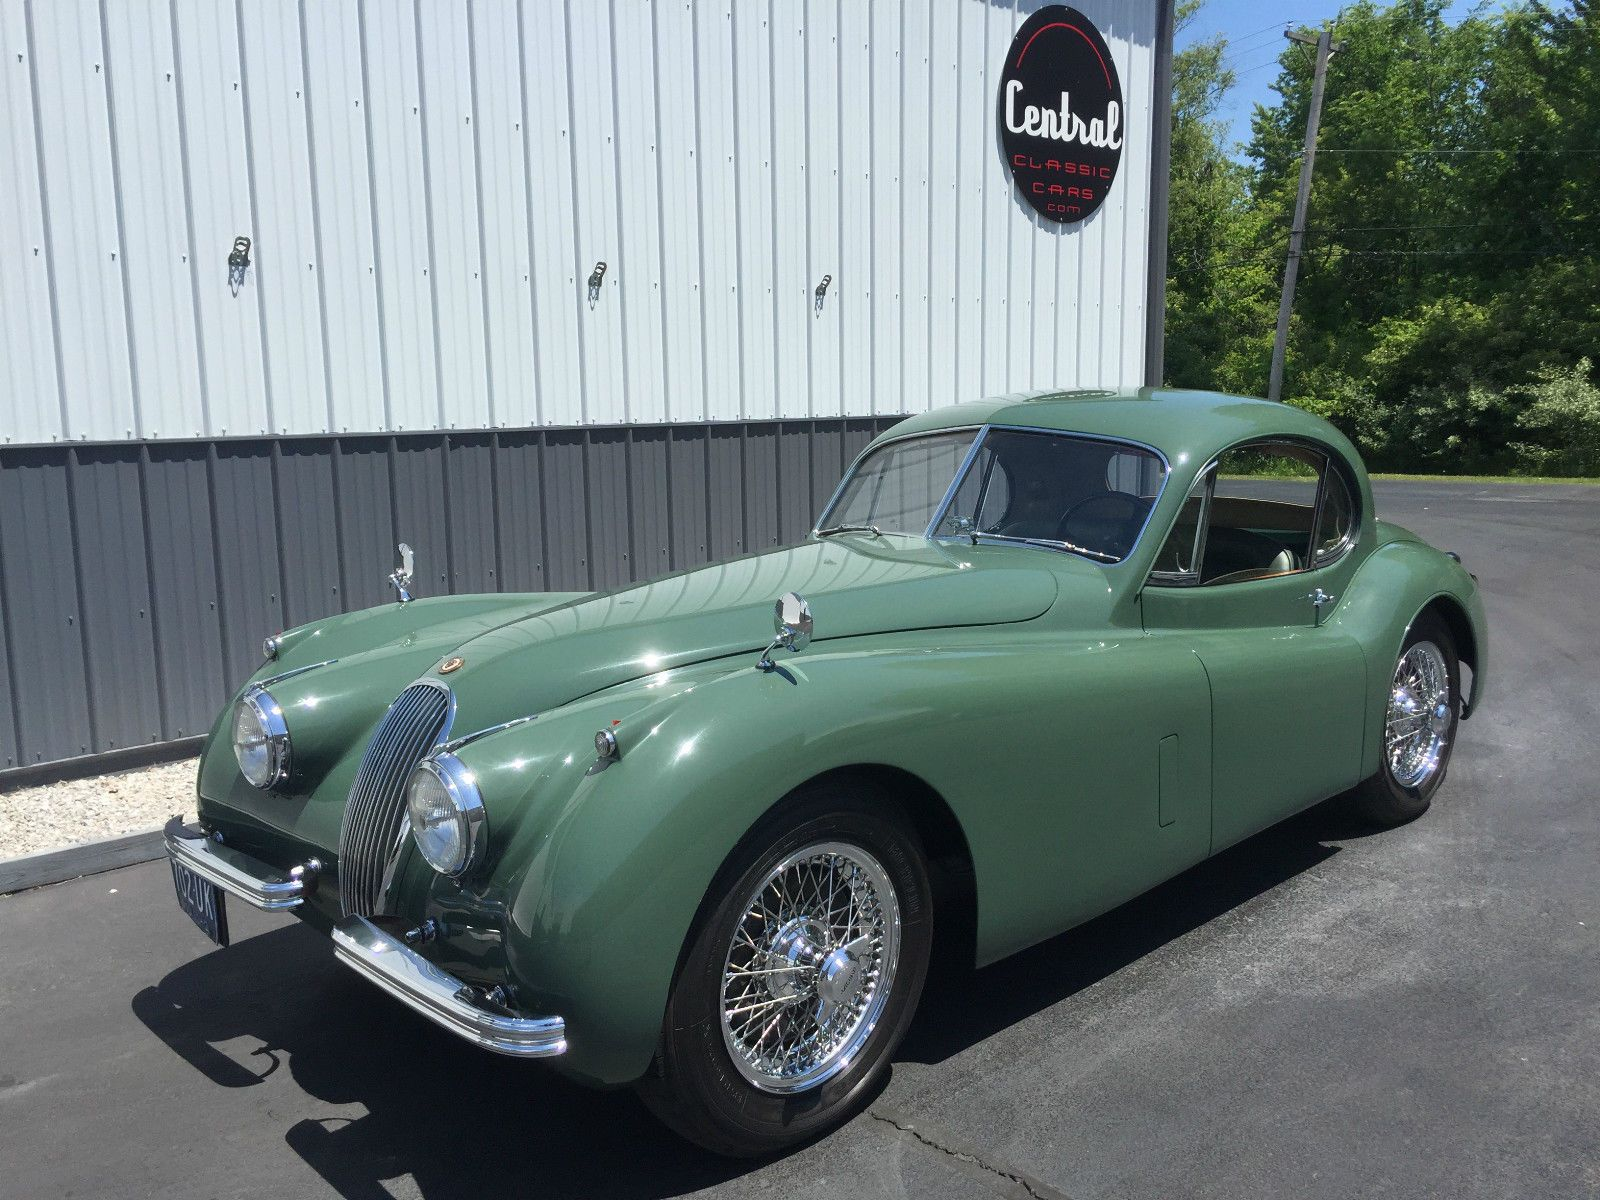 1953 Jaguar XK 2 door coupe | eBay Motors, Cars & Trucks, Jaguar ...